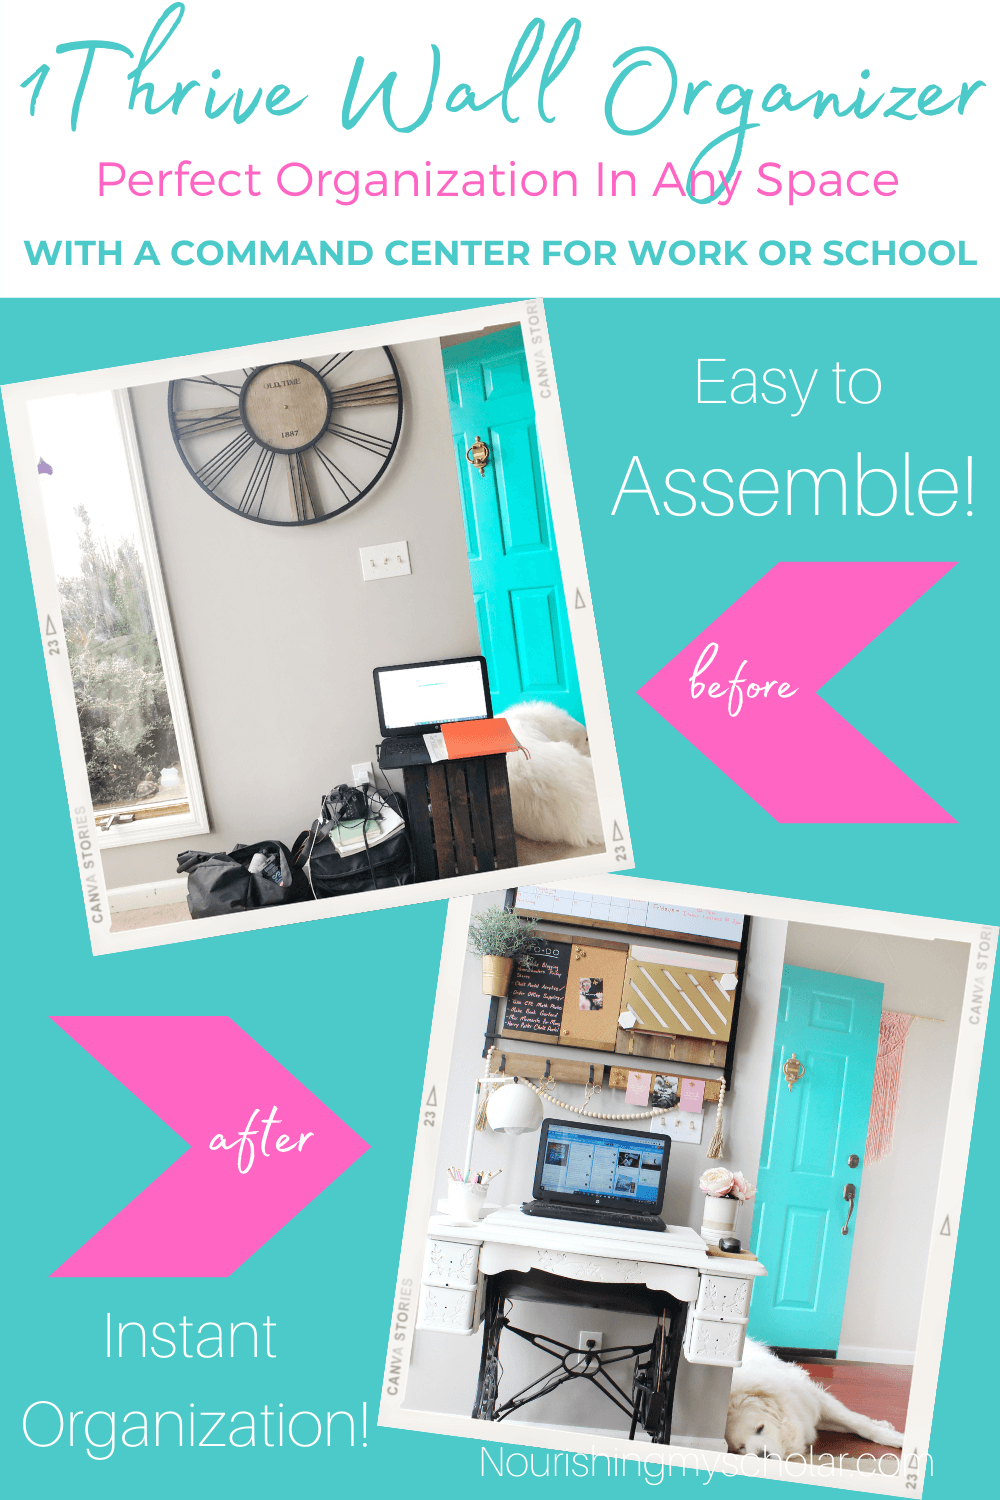 Getting Organized with a 1Thrive Wall Organizer: If your looking for a wall organizer for your home office, homeschool space, or family space then check out my review of 1Thrive's Susan command center! It is perfect for organizing schedules, papers, documents, and more! #commandcenter #familyorganization #familywallorganizer #homeoffice #homeschoolwallorganizer #officespacerefresh #officespaceupdate #officewallorganizer #organization #organizationideas #organizedhome #wallorganization